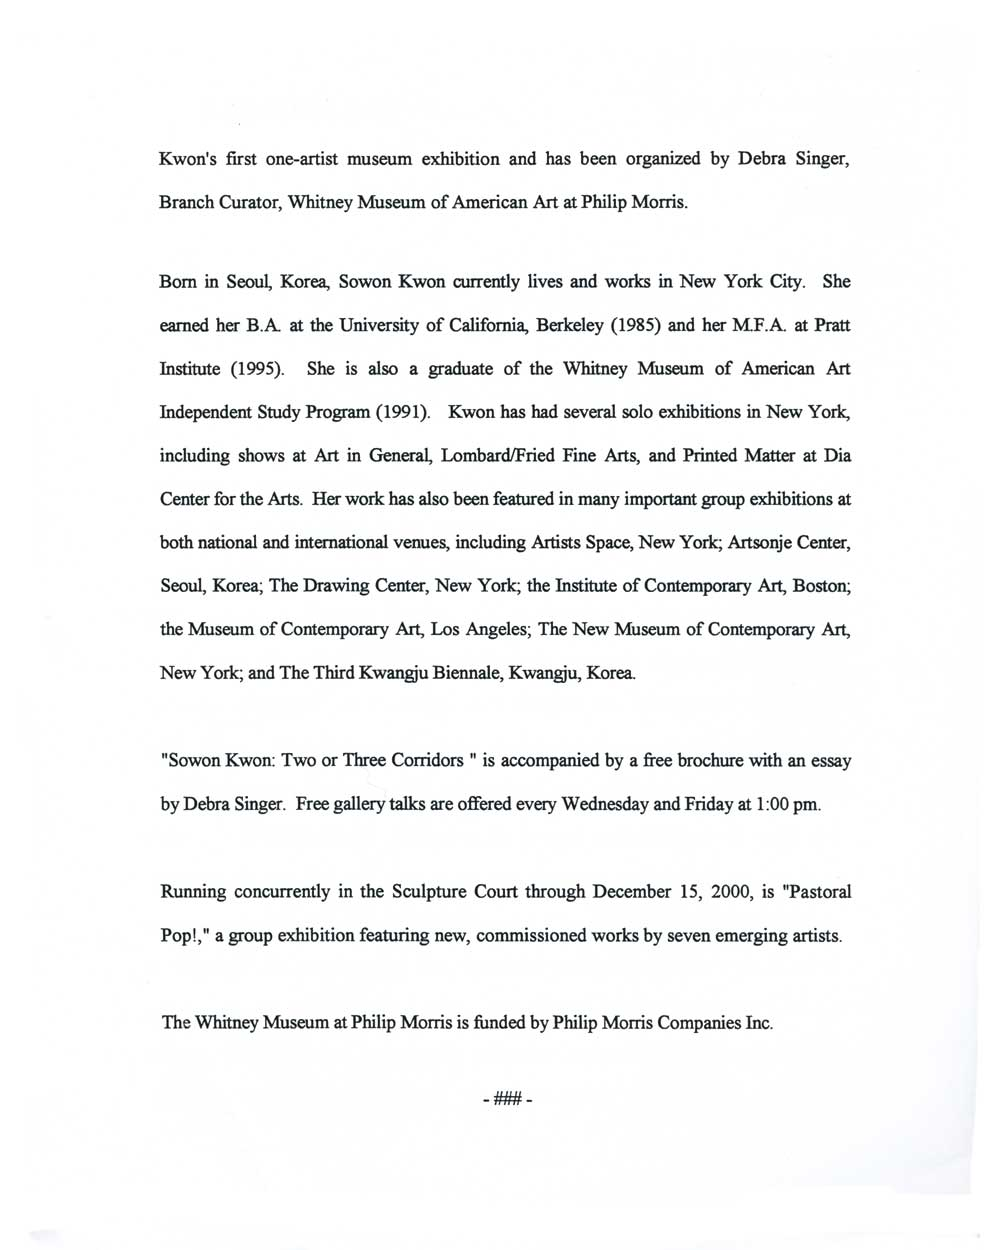 Sowon Kwon: Two or Three Corridors, press release, pg 2